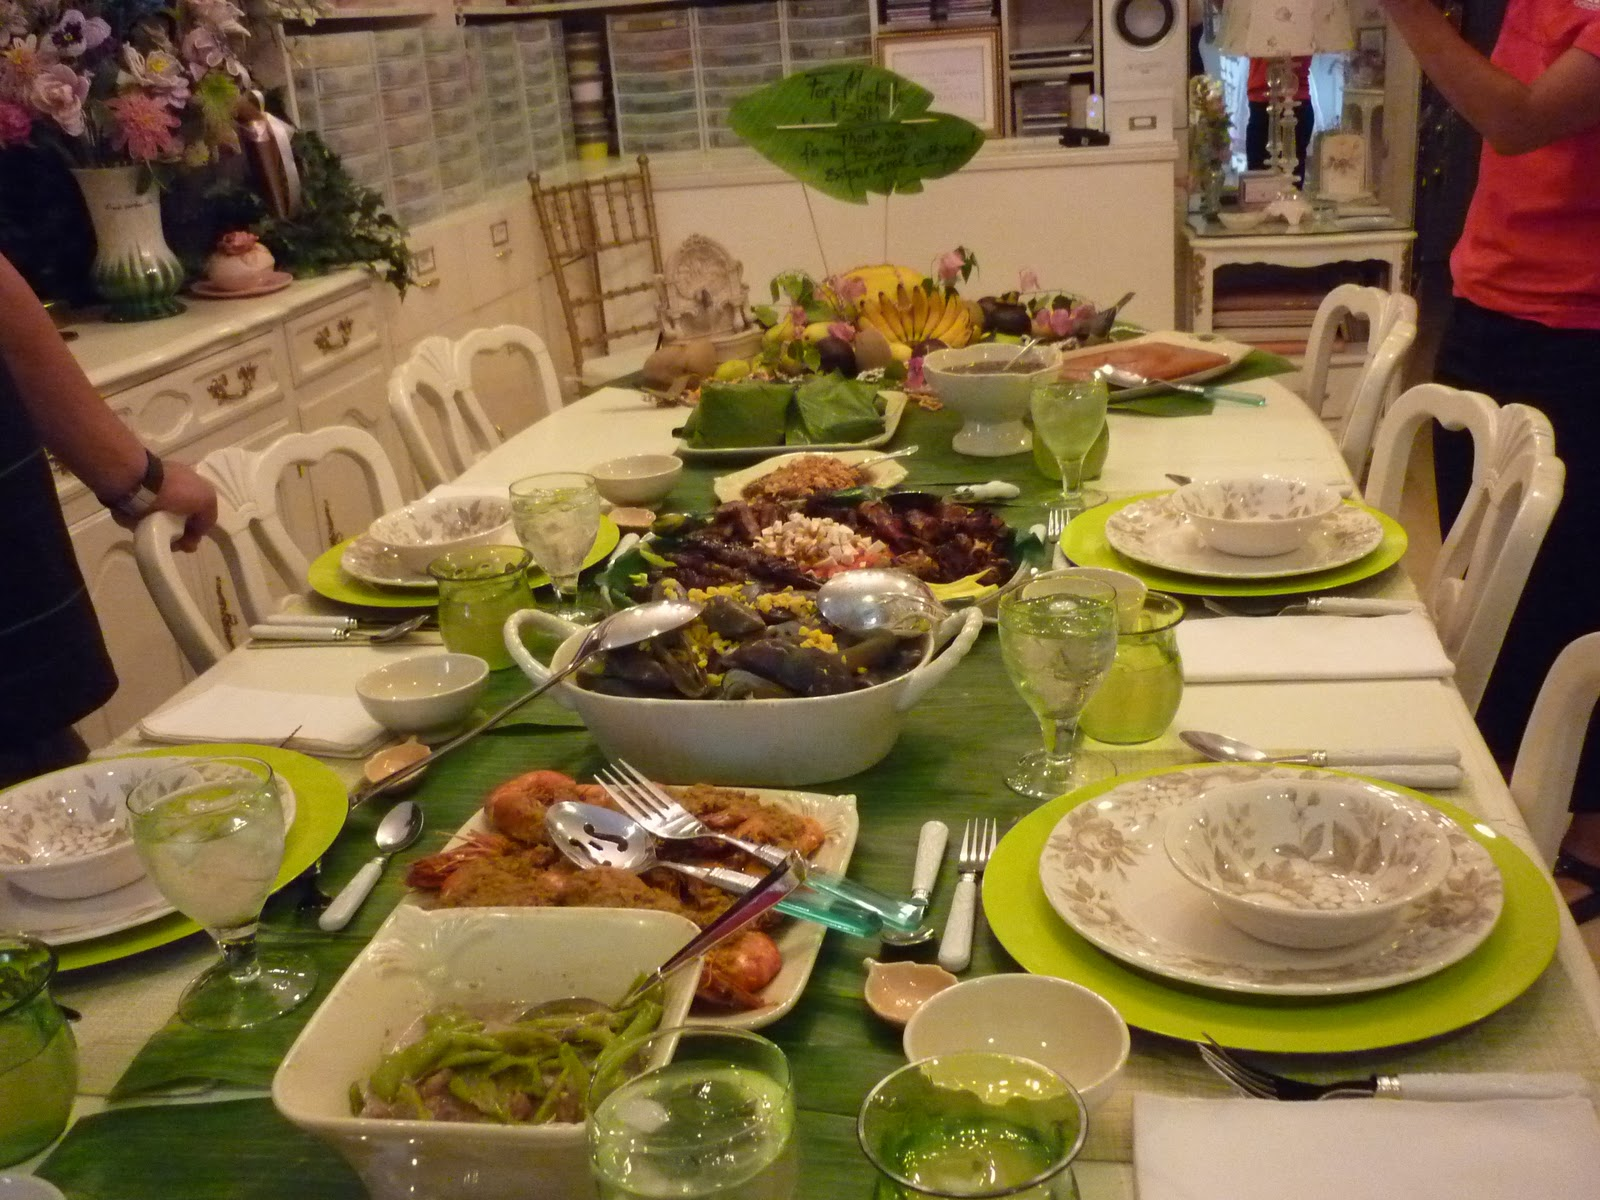 Amusing Buffet Service Table Setting Ideas - Best Image Engine ... Amusing Buffet Service Table Setting Ideas Best Image Engine & Awesome Table Setting Filipino Style Ideas - Best Image Engine ...